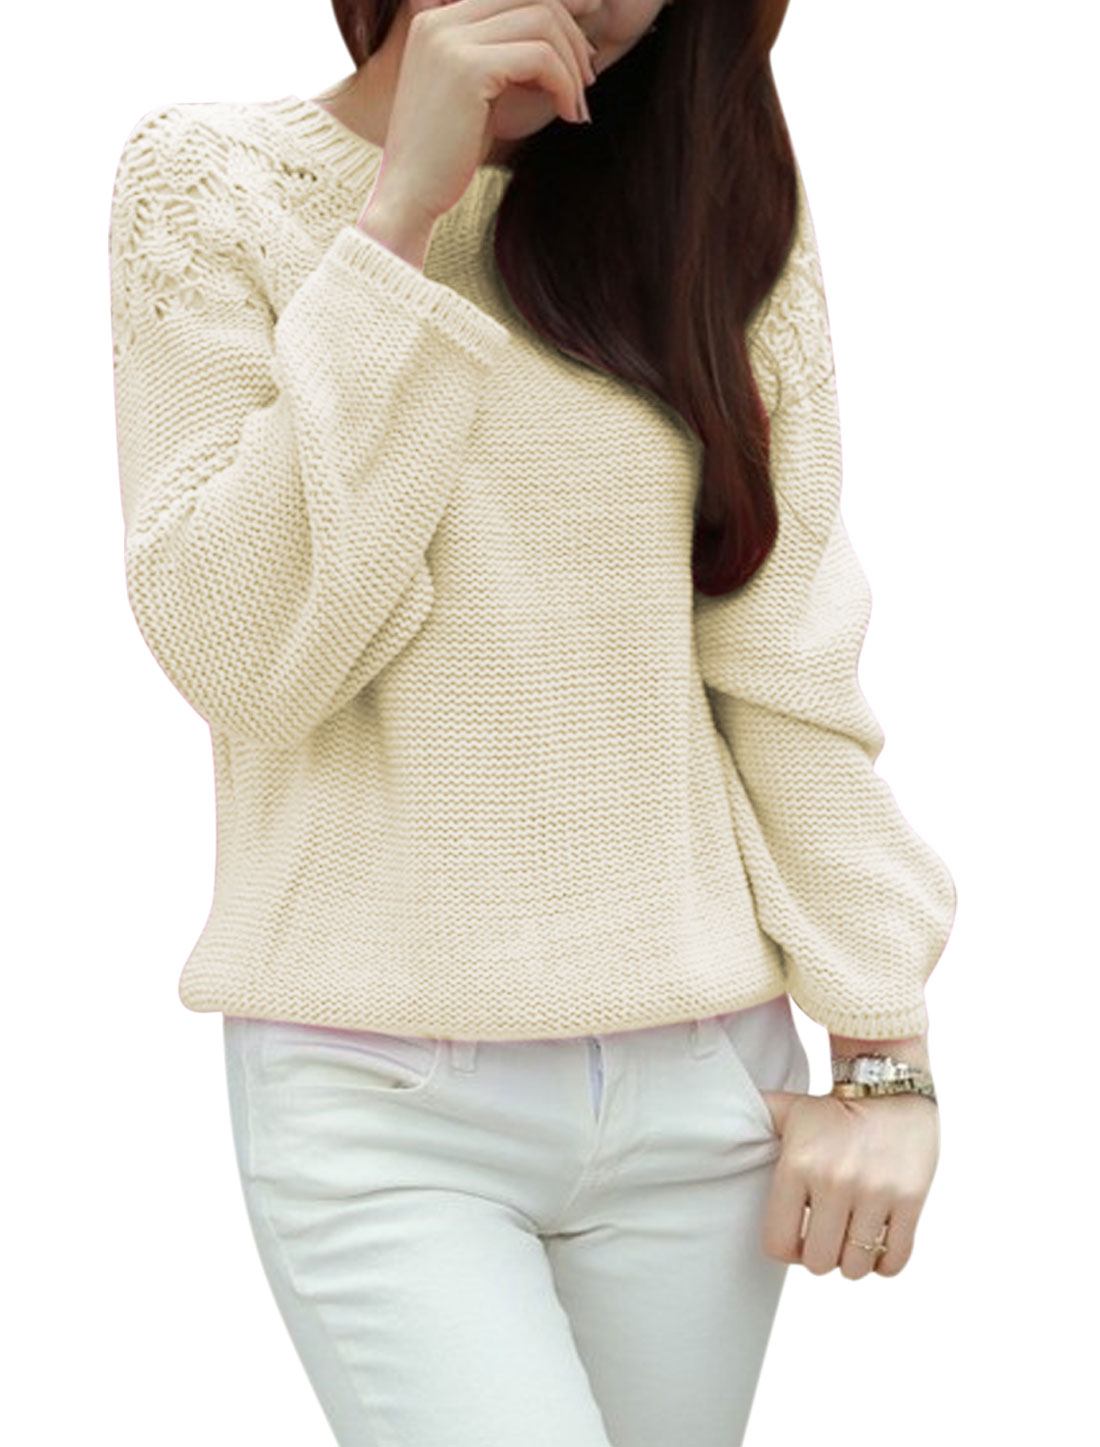 Lady Pullover Self Tie Bow Back Leisure Sweater Beige XS